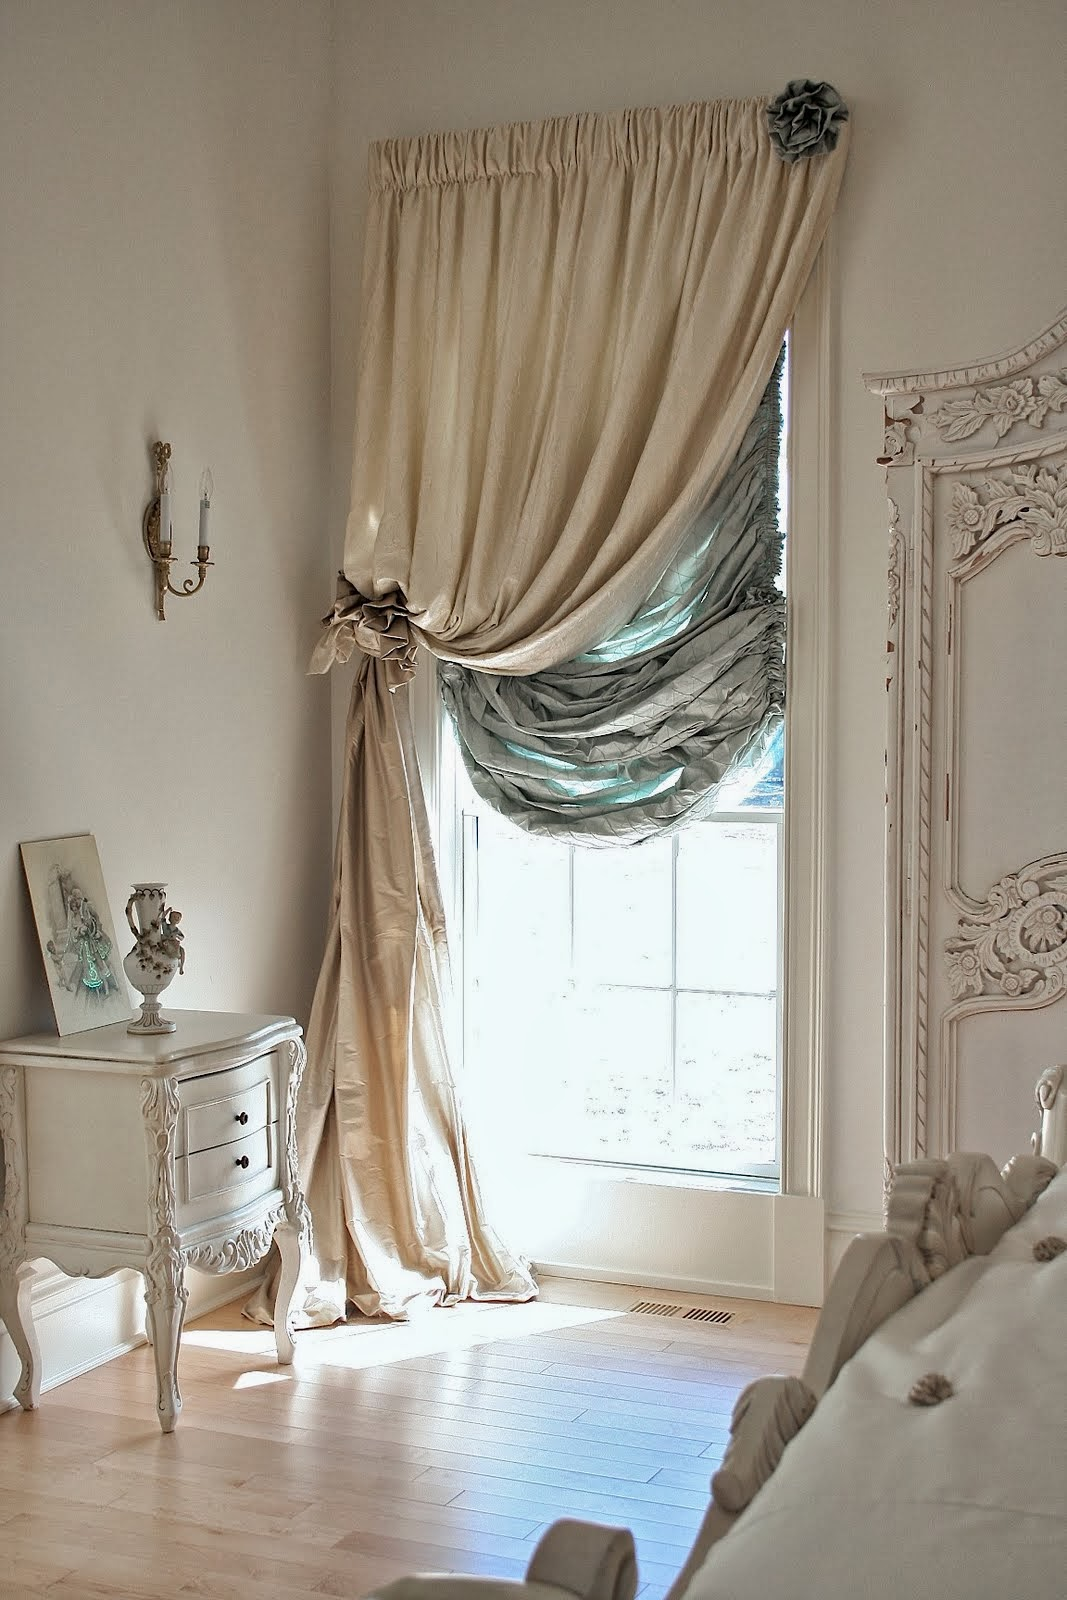 Romancing+the+room+by+cool+chic+style+fashion+(5)